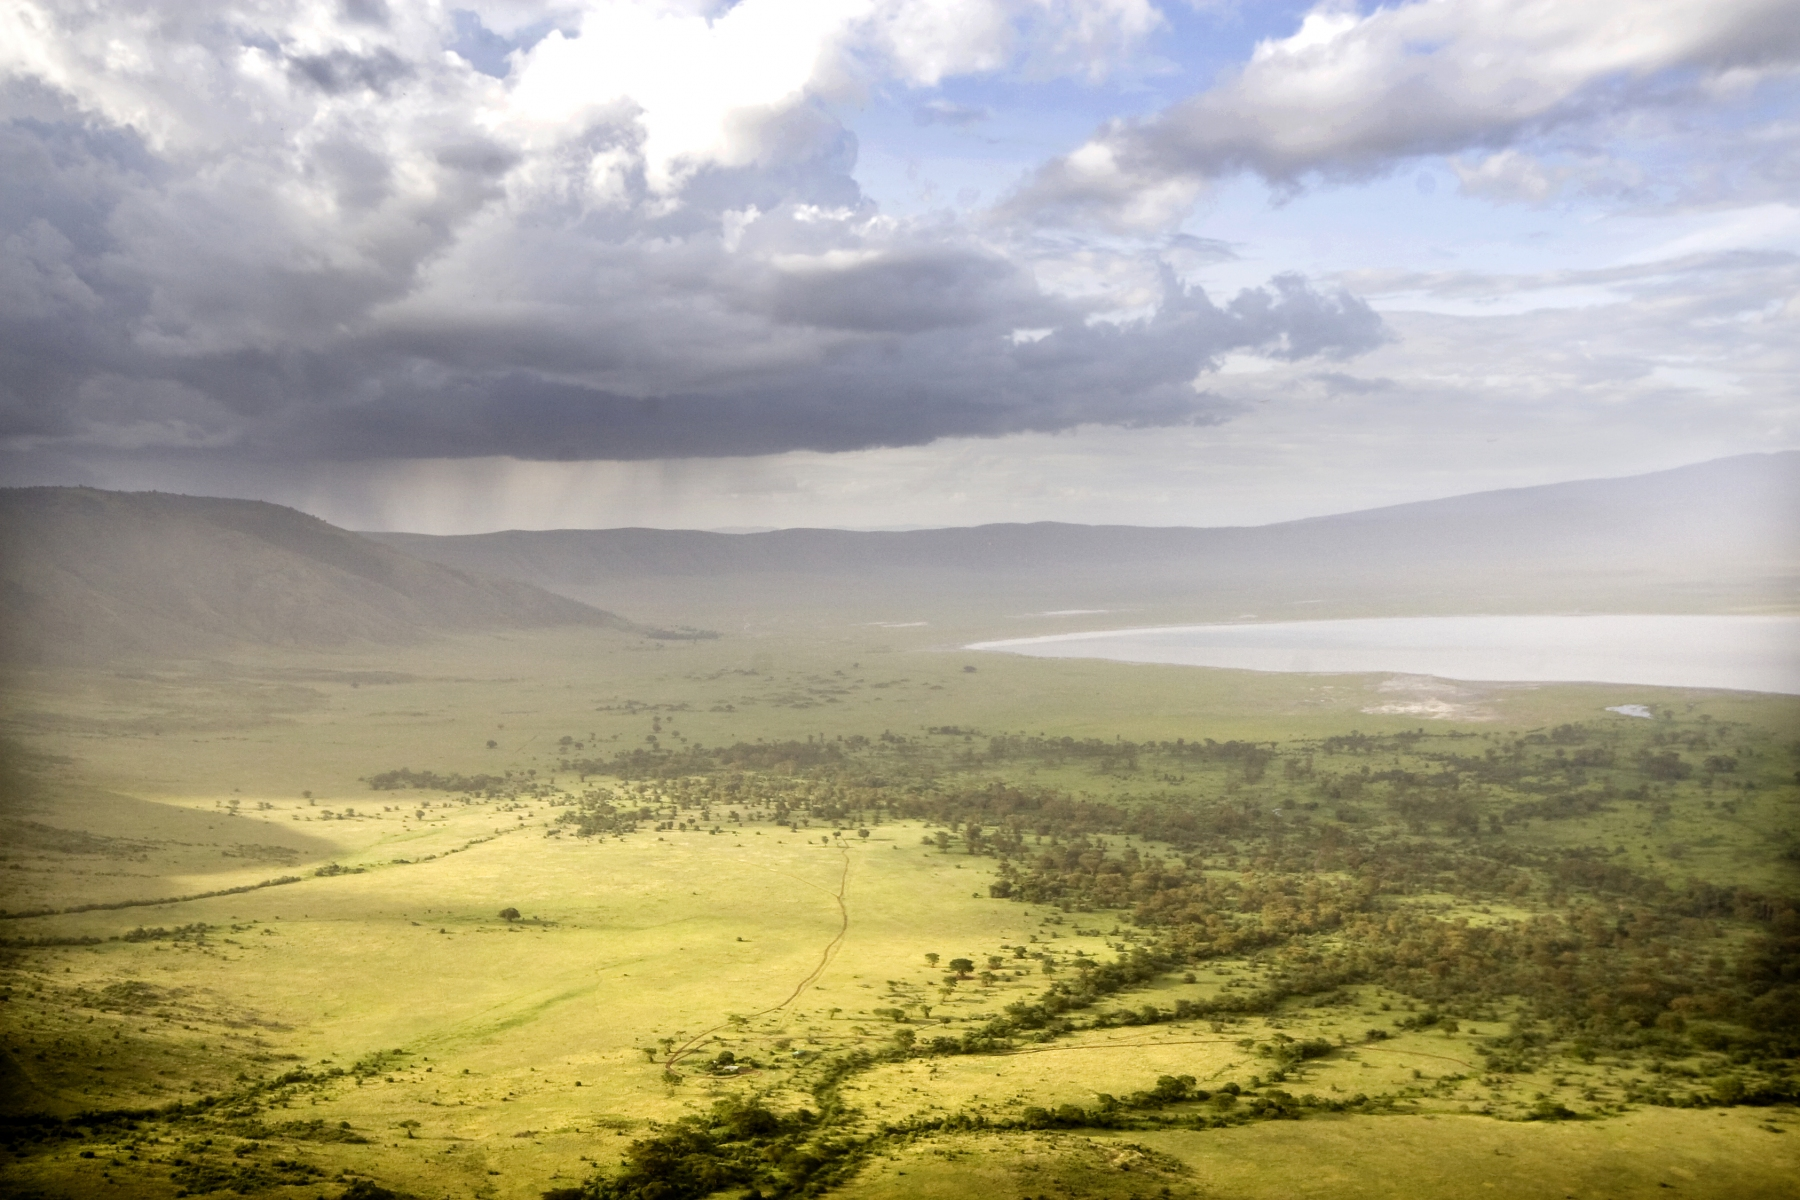 The Ngorongoro krater